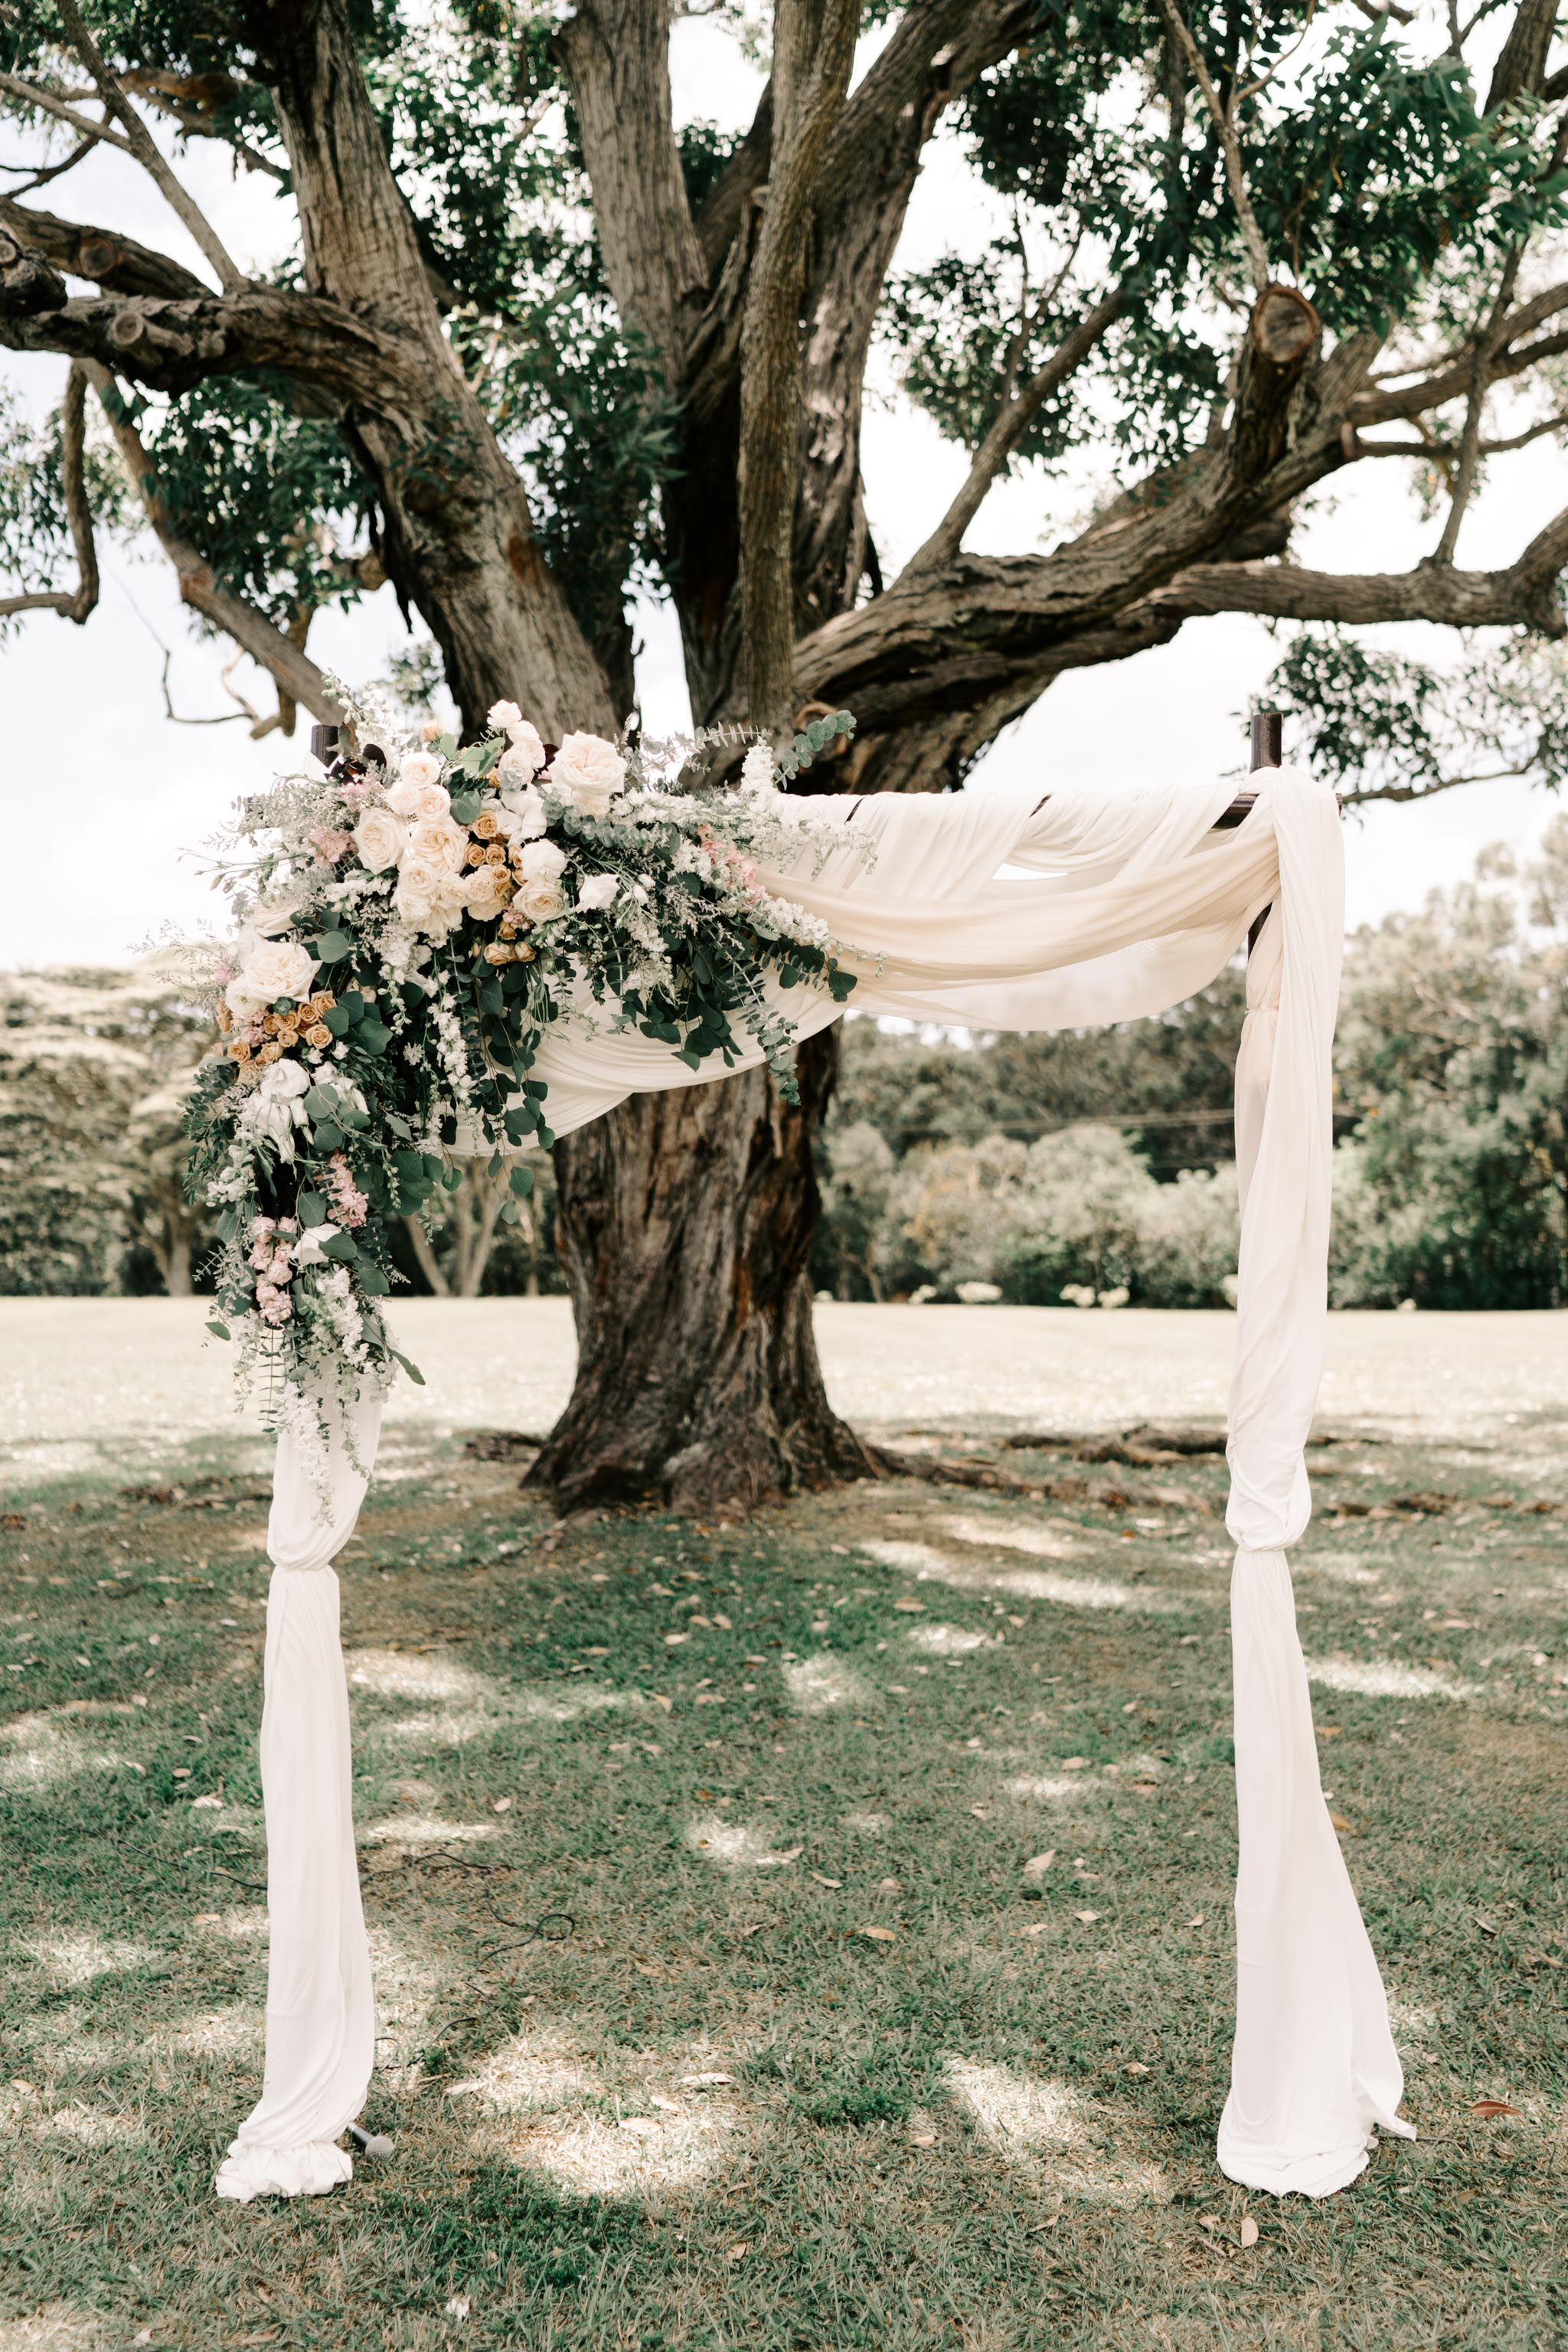 Floral Wedding Ceremony Arch Idea - Sunset Ranch Hawaii Wedding By Oahu Wedding Photographer Desiree Leilani